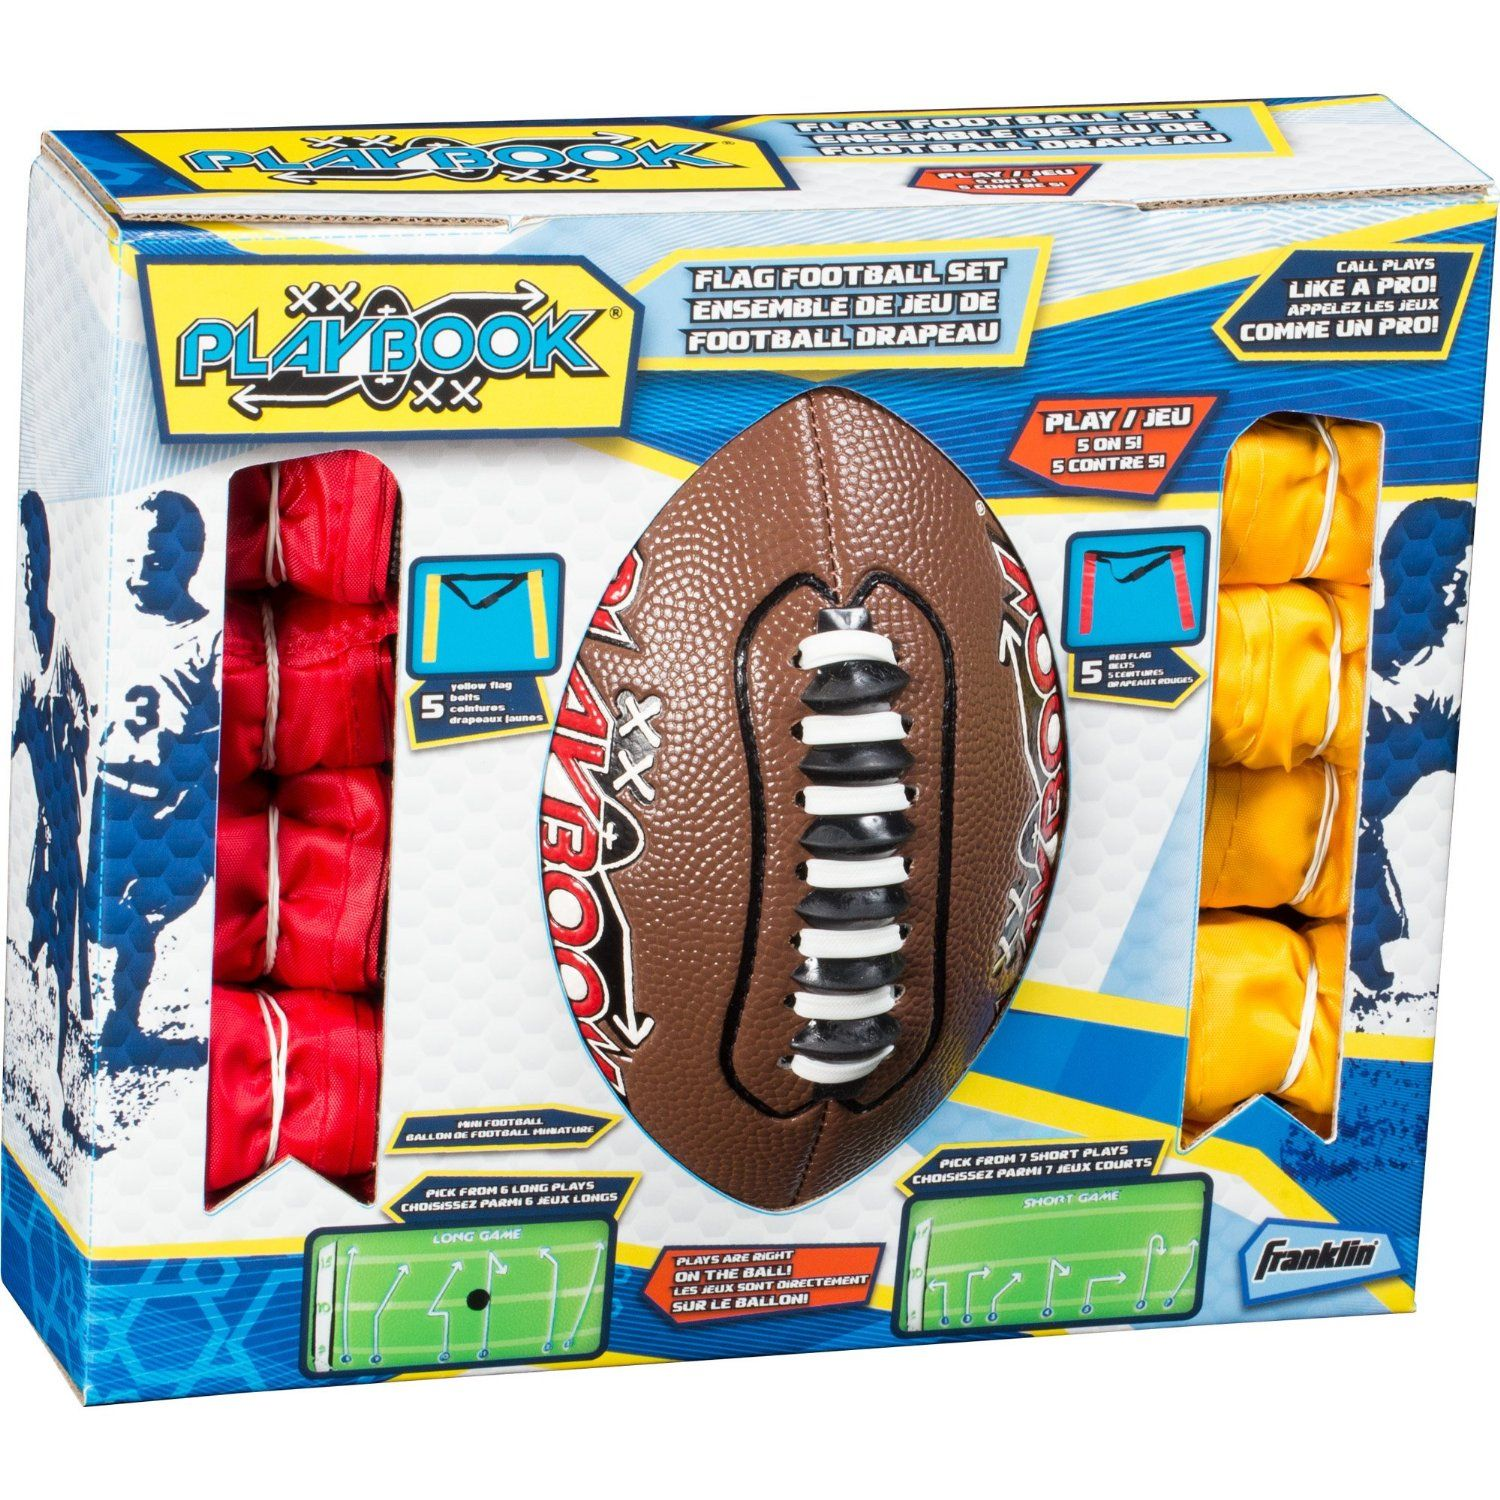 Playbook Flag Football - Kids Sports by Franklin (33024E2)